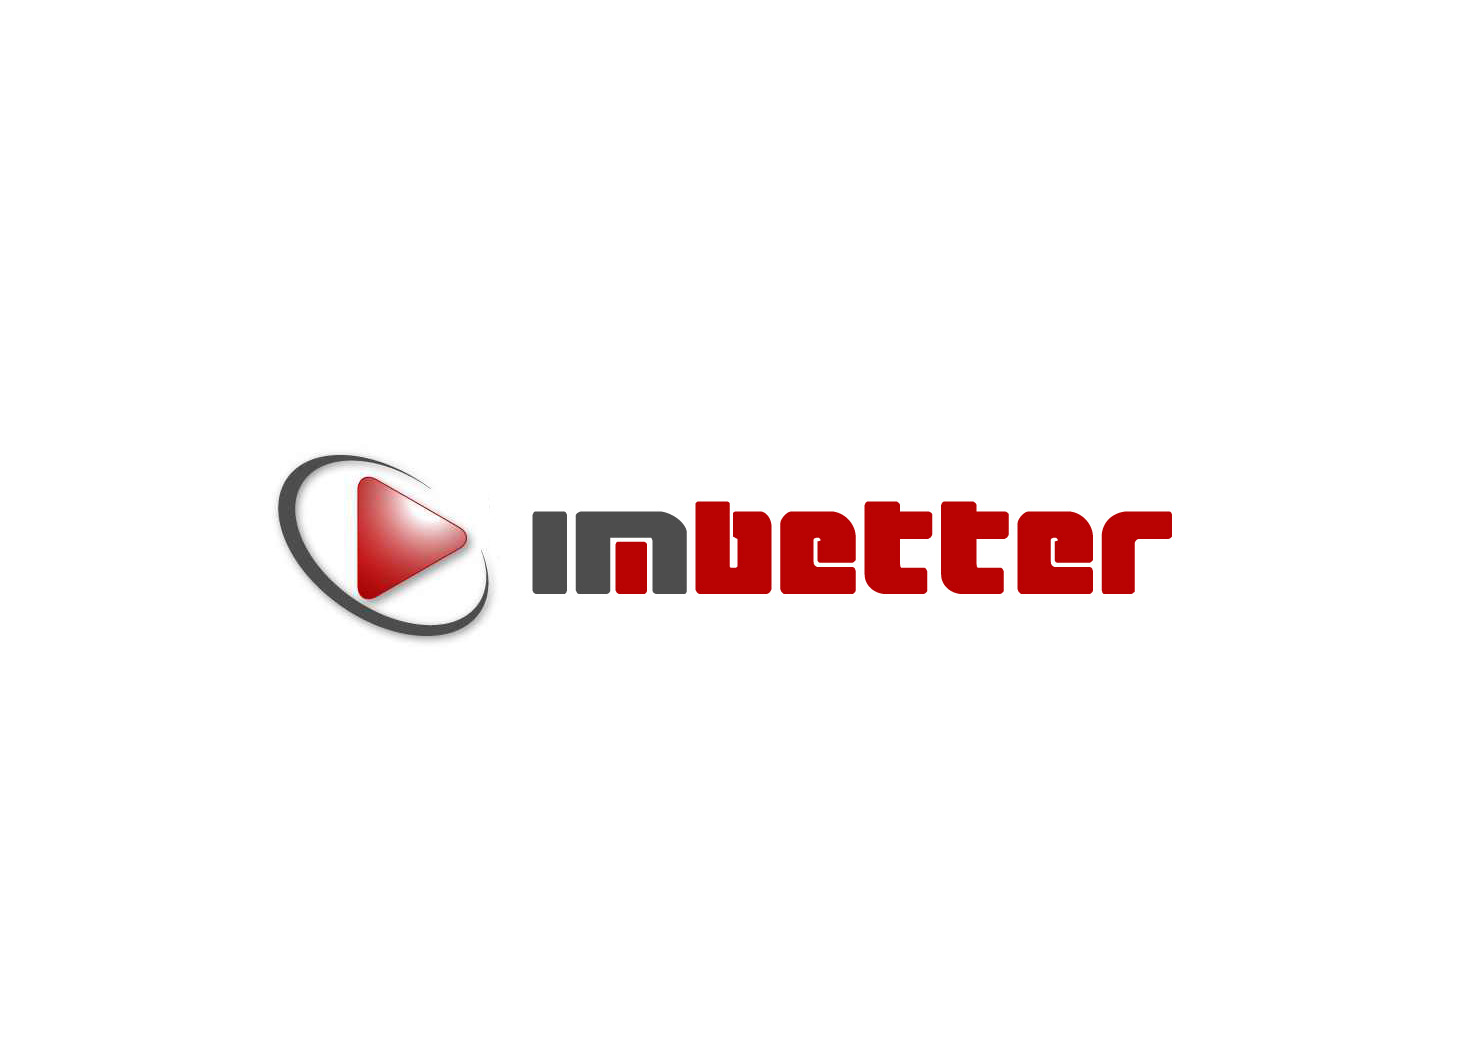 Logo Design by Burhan uddin Sheik - Entry No. 90 in the Logo Design Contest Imaginative Logo Design for imbetter.